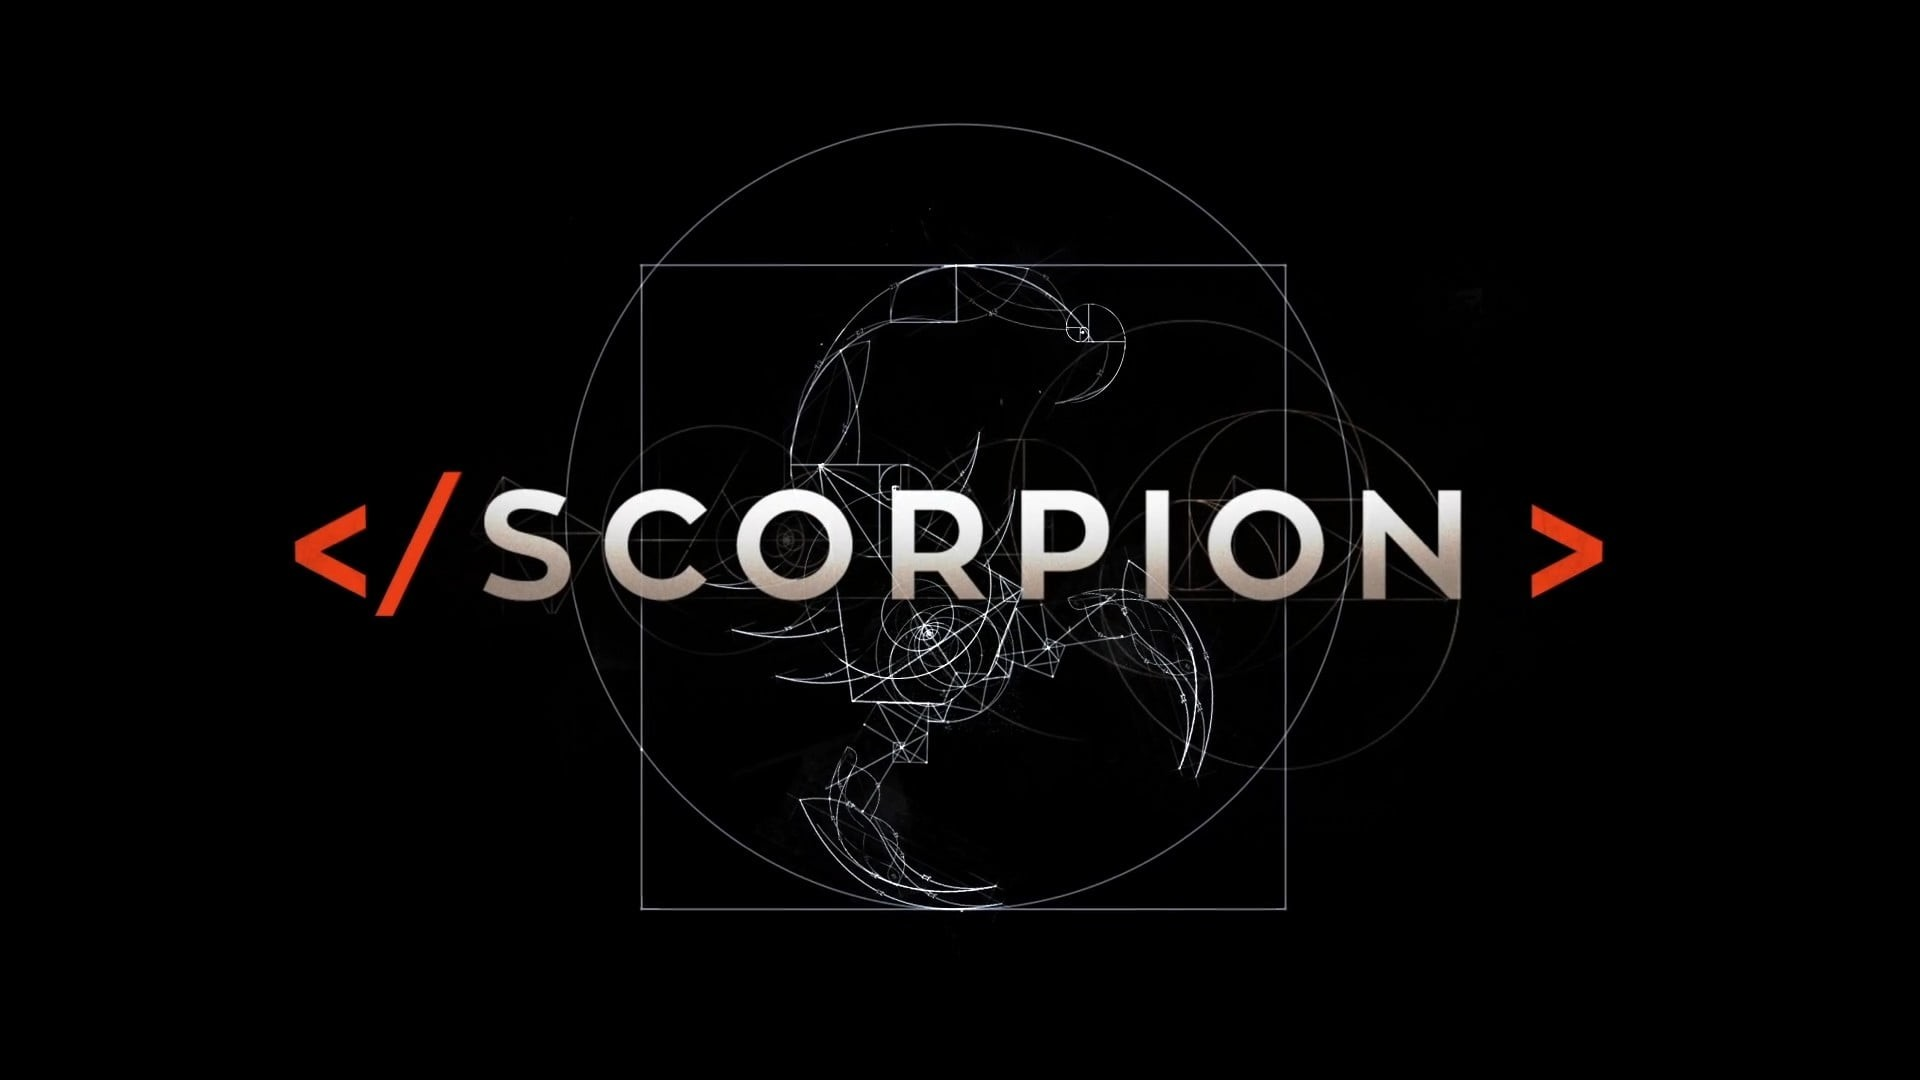 Red scorpion wallpaper - photo#46